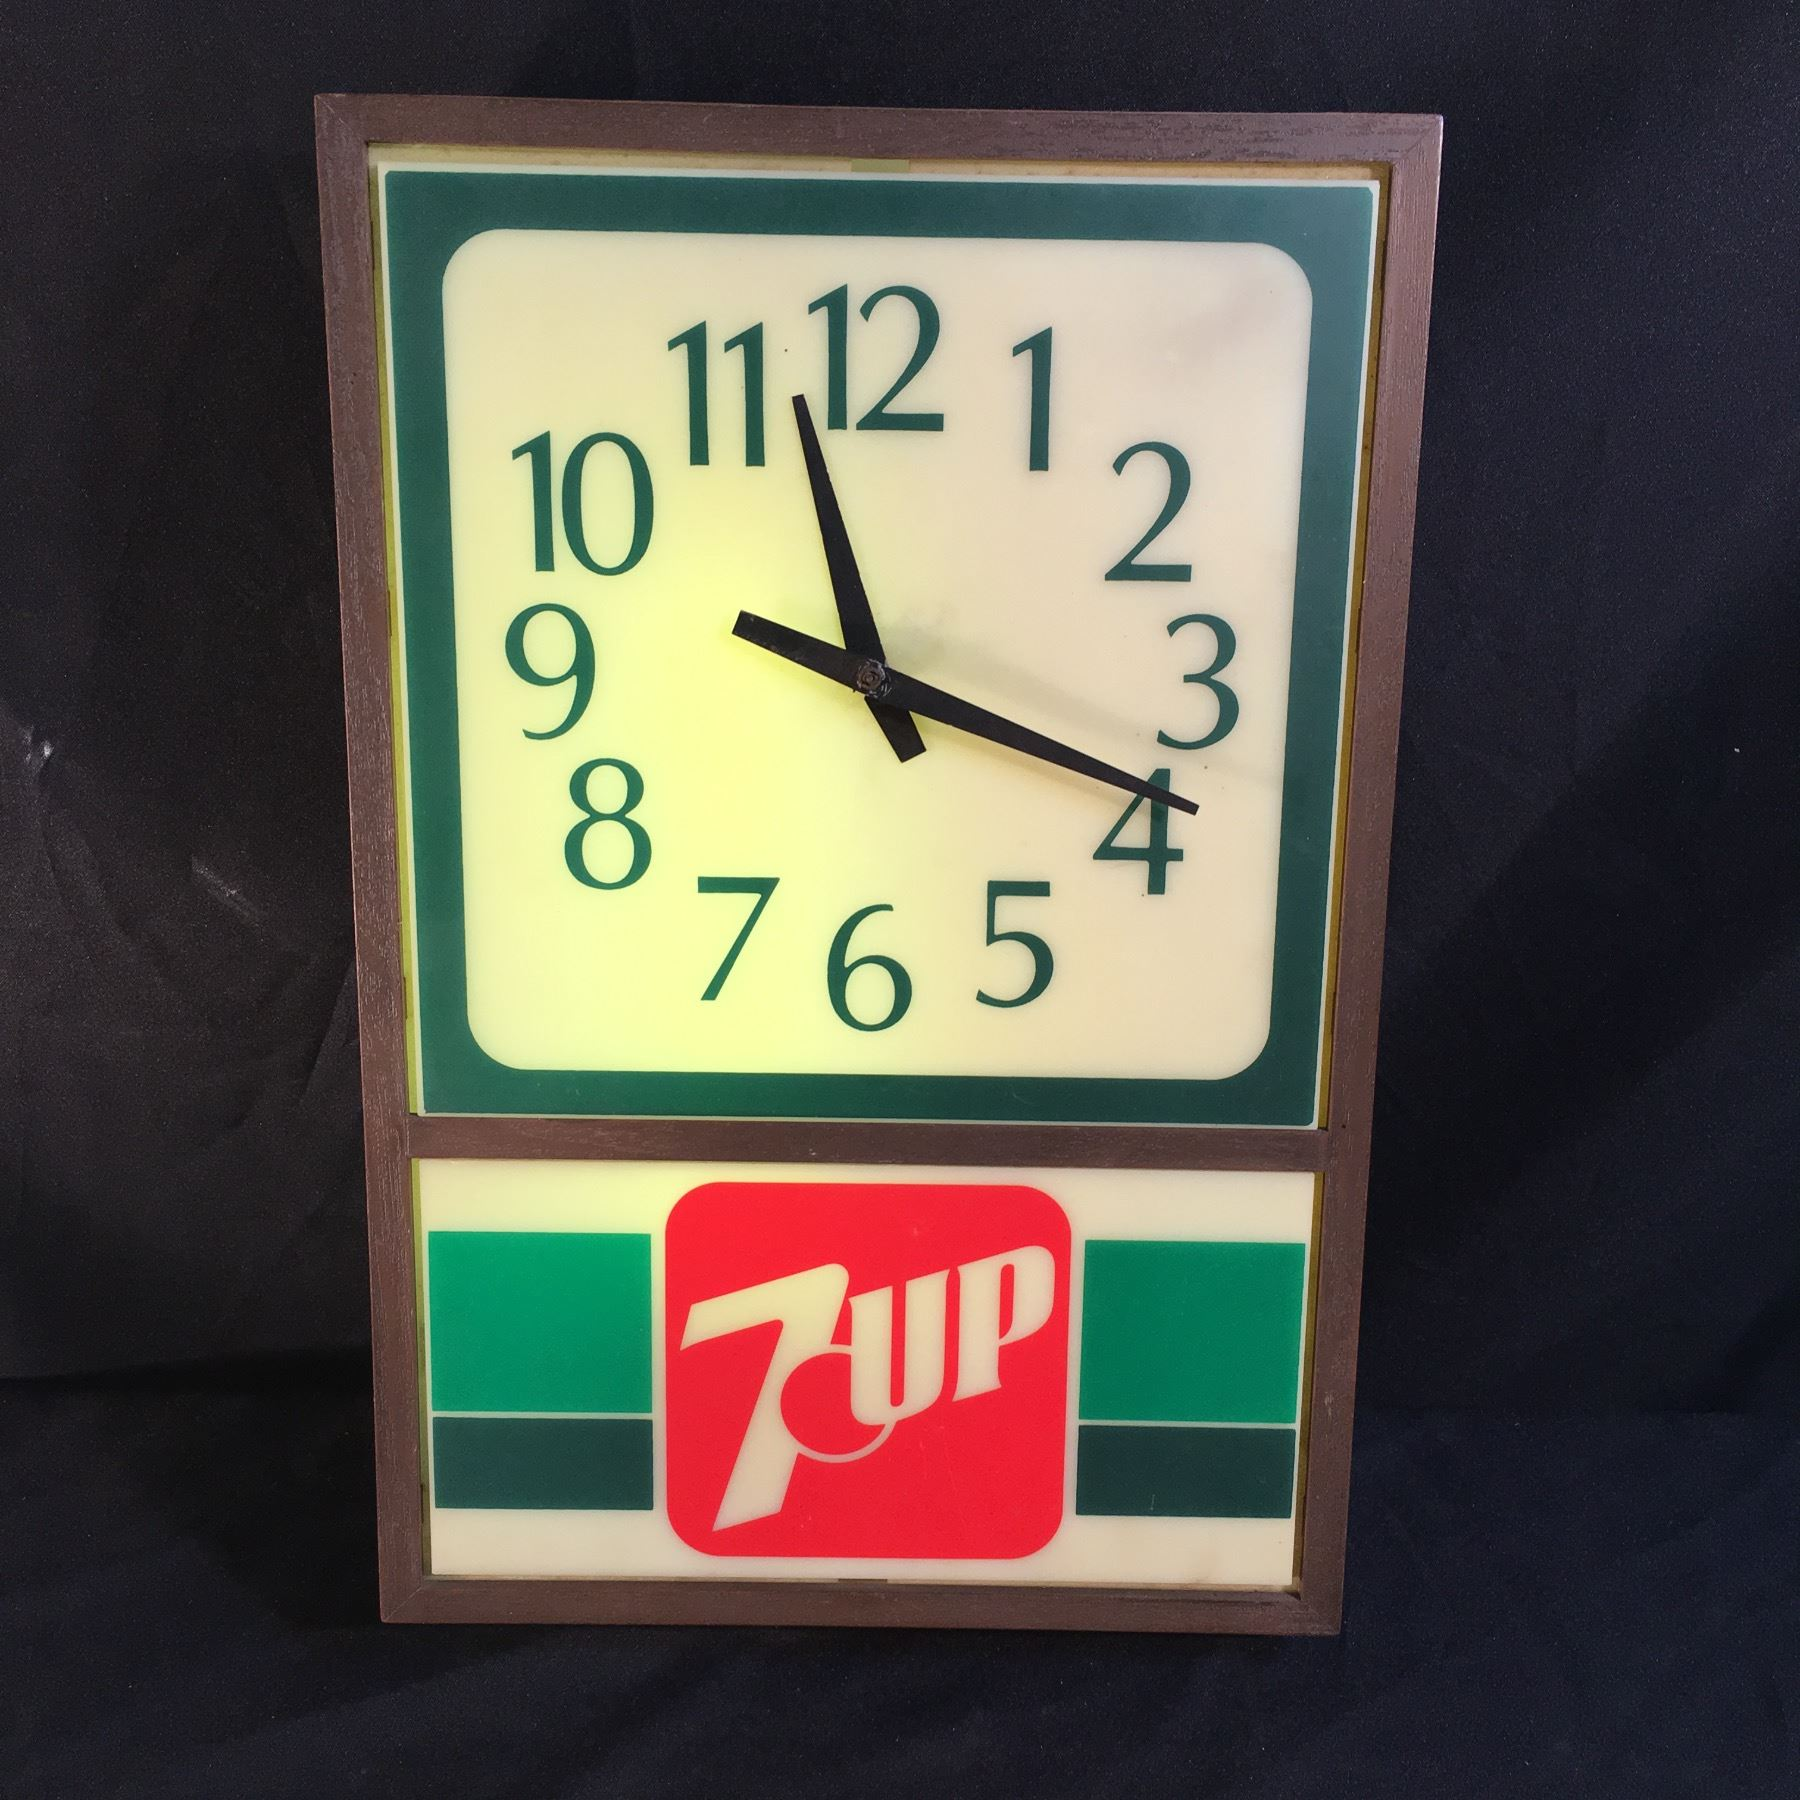 Vintage 7 up light up wall clock 19 high image 1 vintage 7 up light up wall clock 19 high aloadofball Image collections